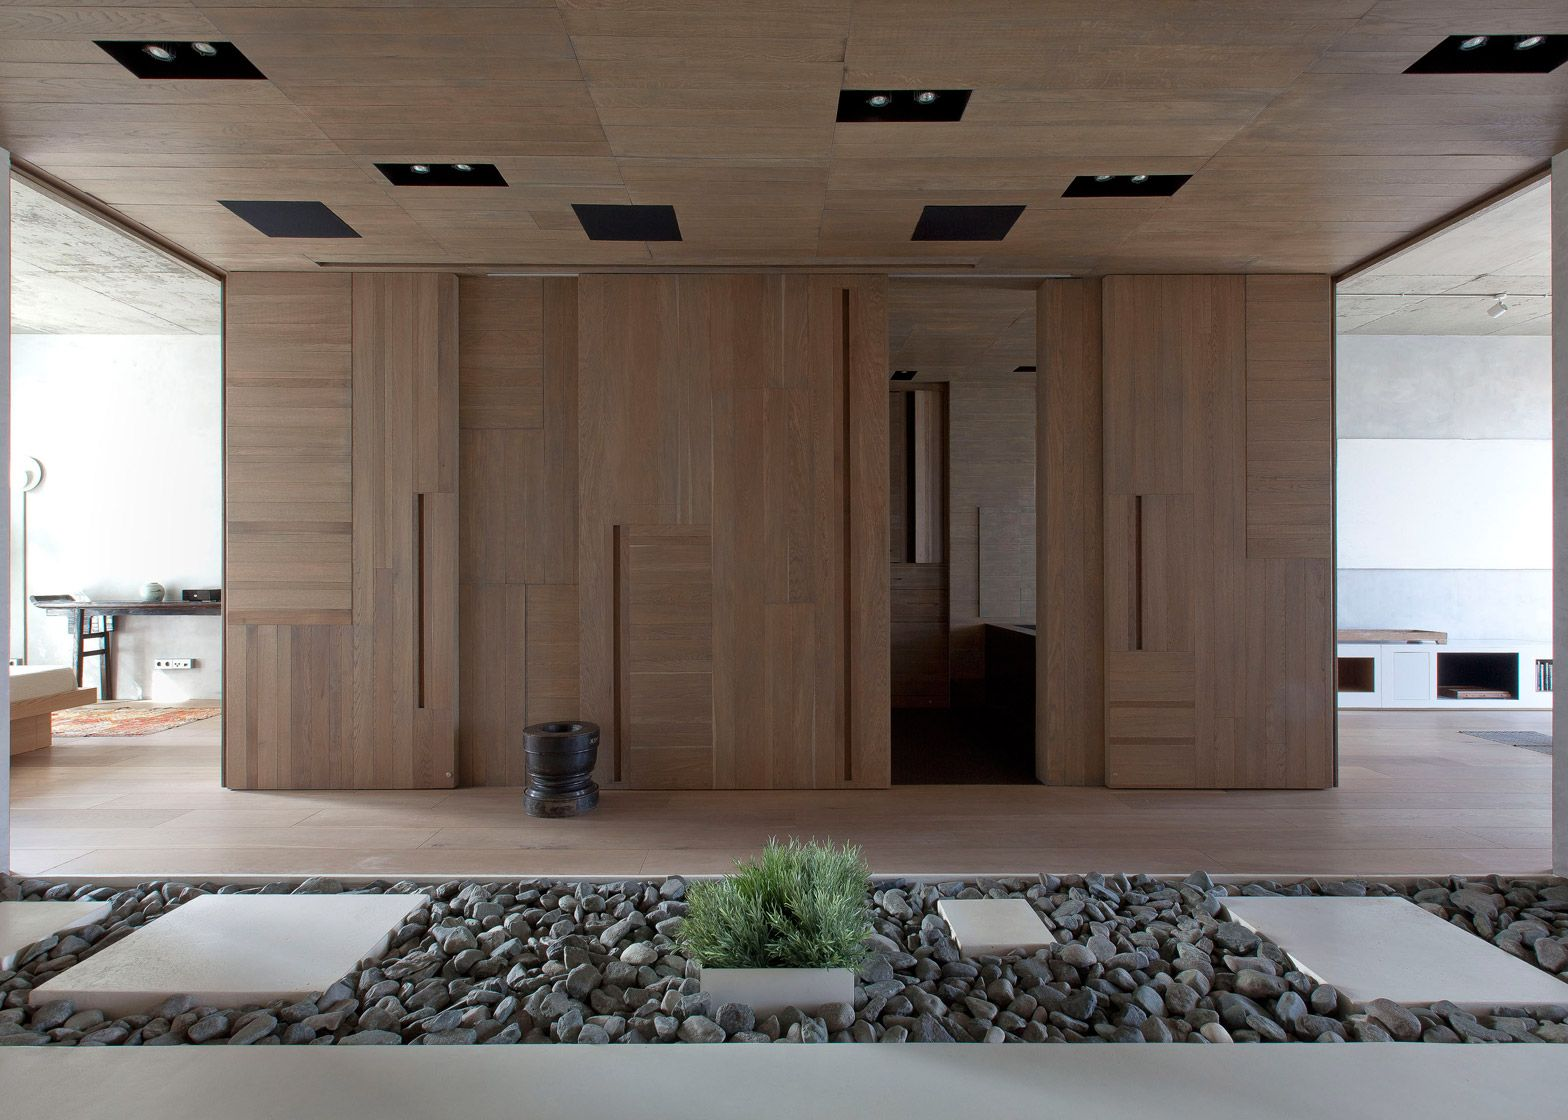 Traditional Japanese interiors and natural landscapes influenced the ...